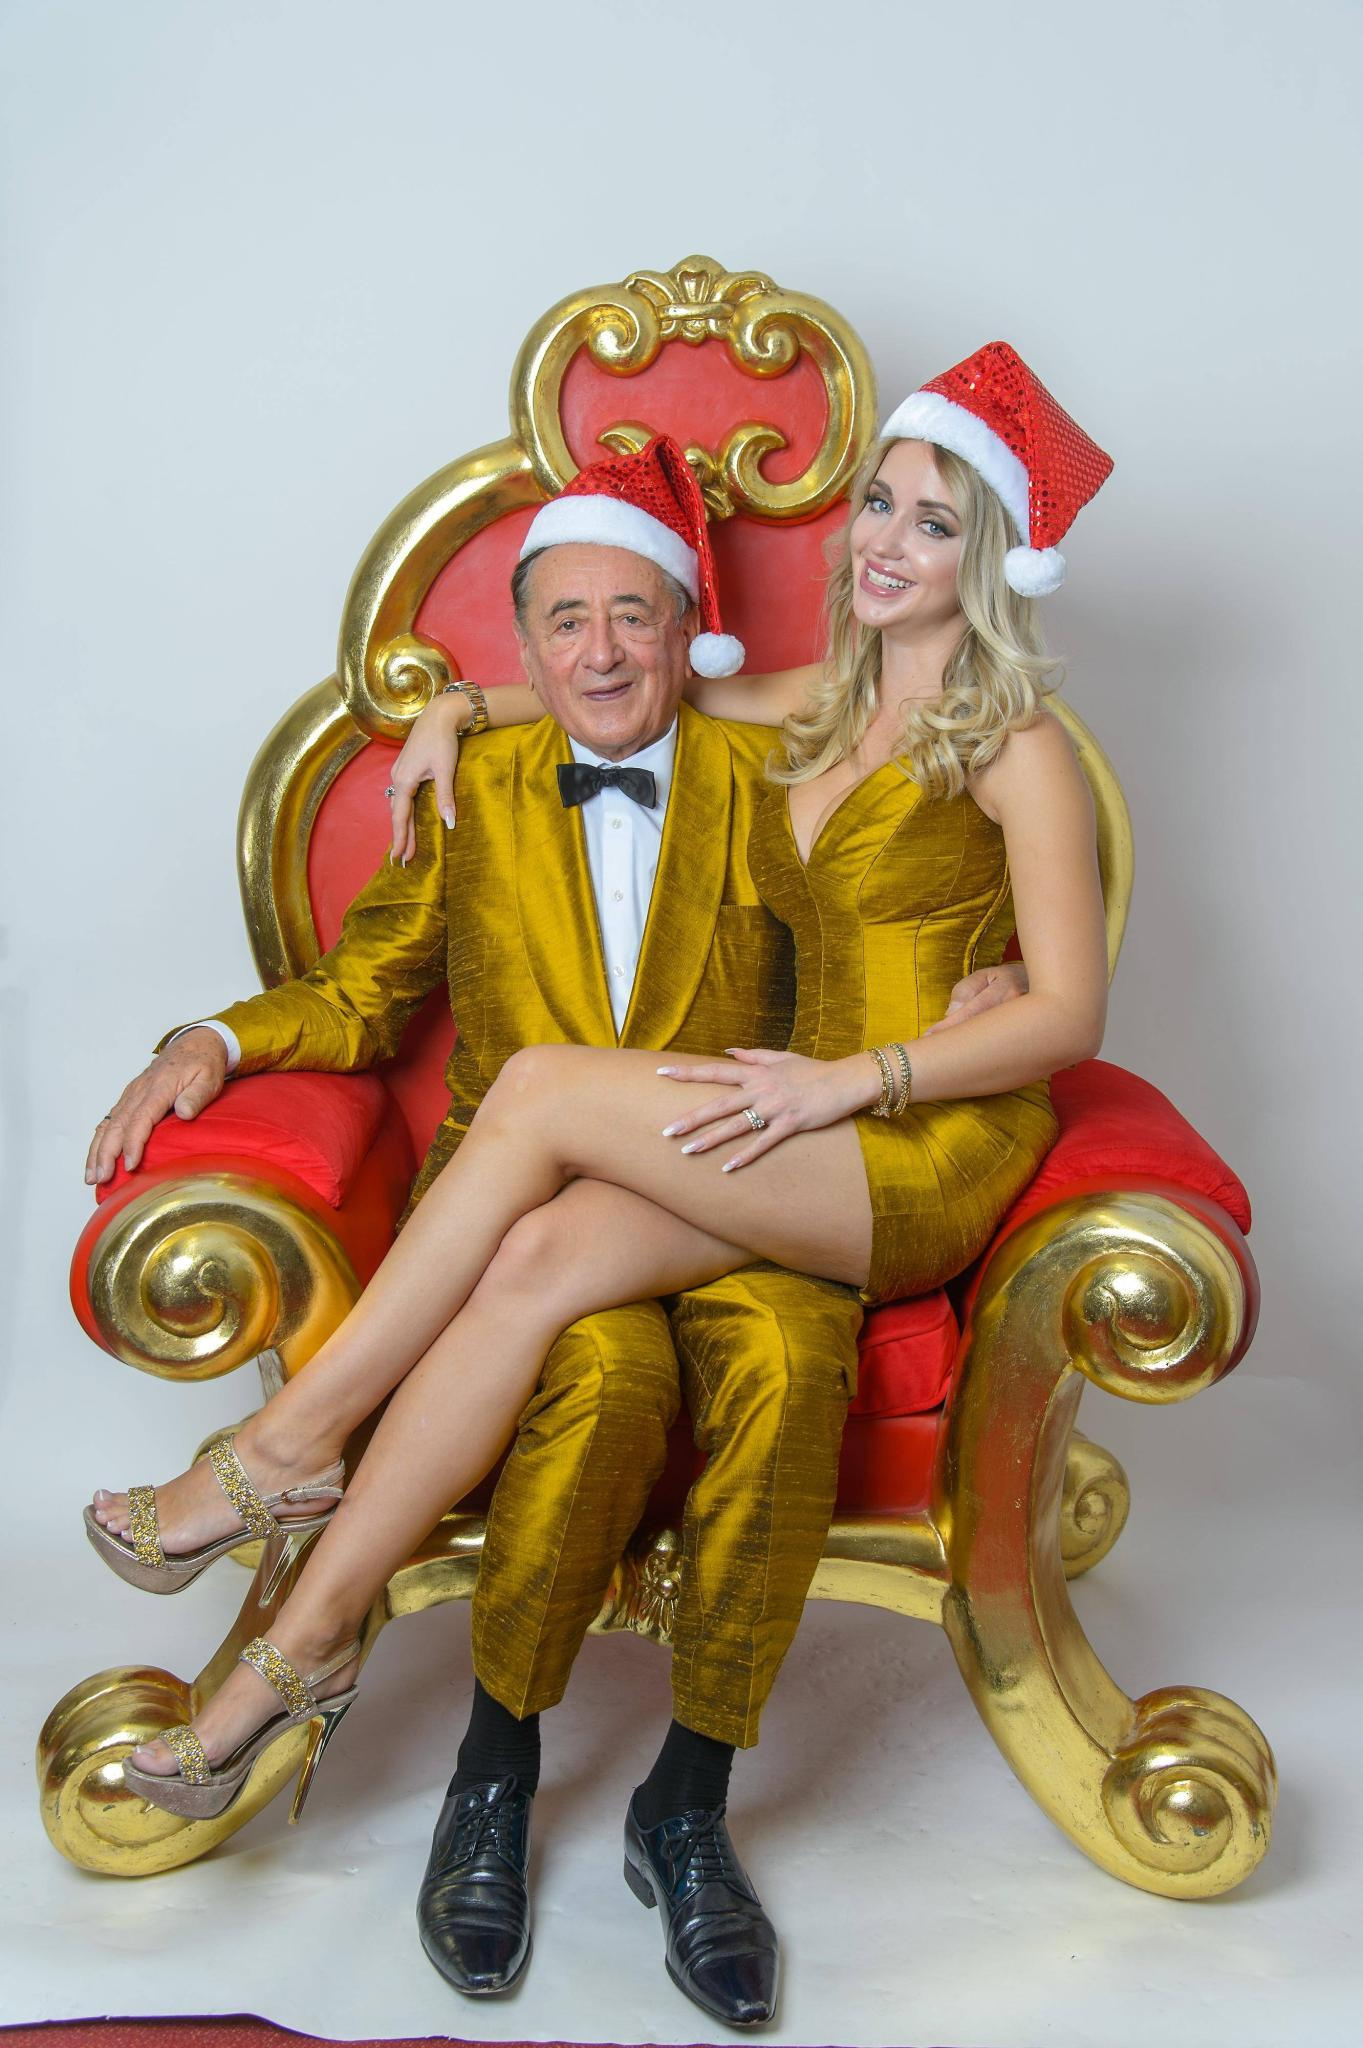 Richard un Cathy Lugner im Weihnachts-Outfit